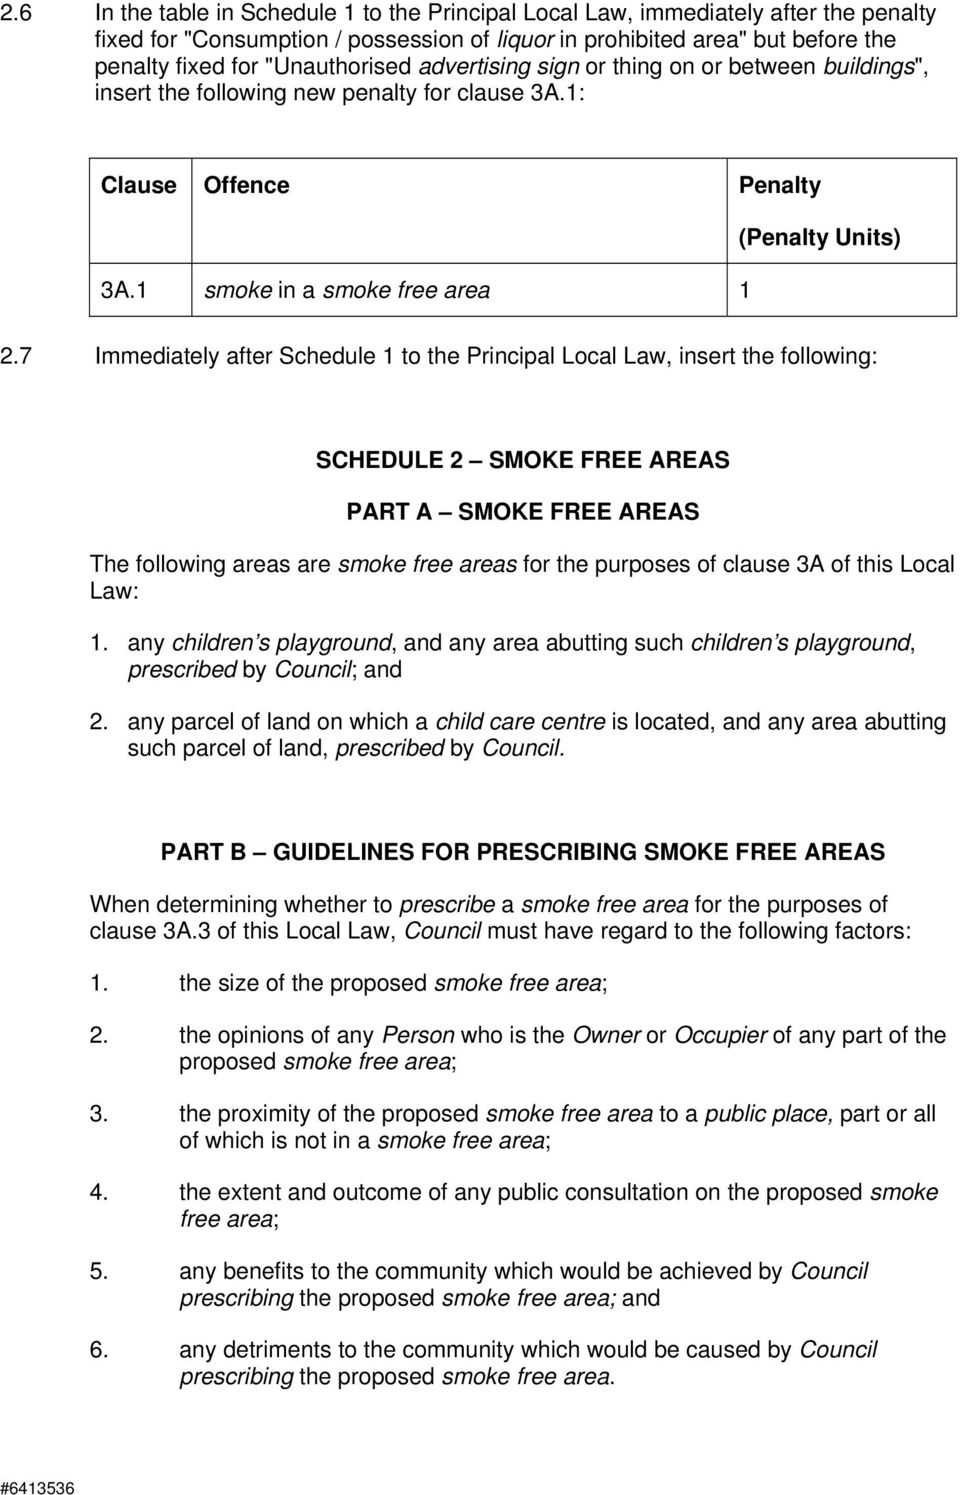 7 Immediately after Schedule 1 to the Principal Local Law, insert the following: SCHEDULE 2 SMOKE FREE AREAS PART A SMOKE FREE AREAS The following areas are smoke free areas for the purposes of